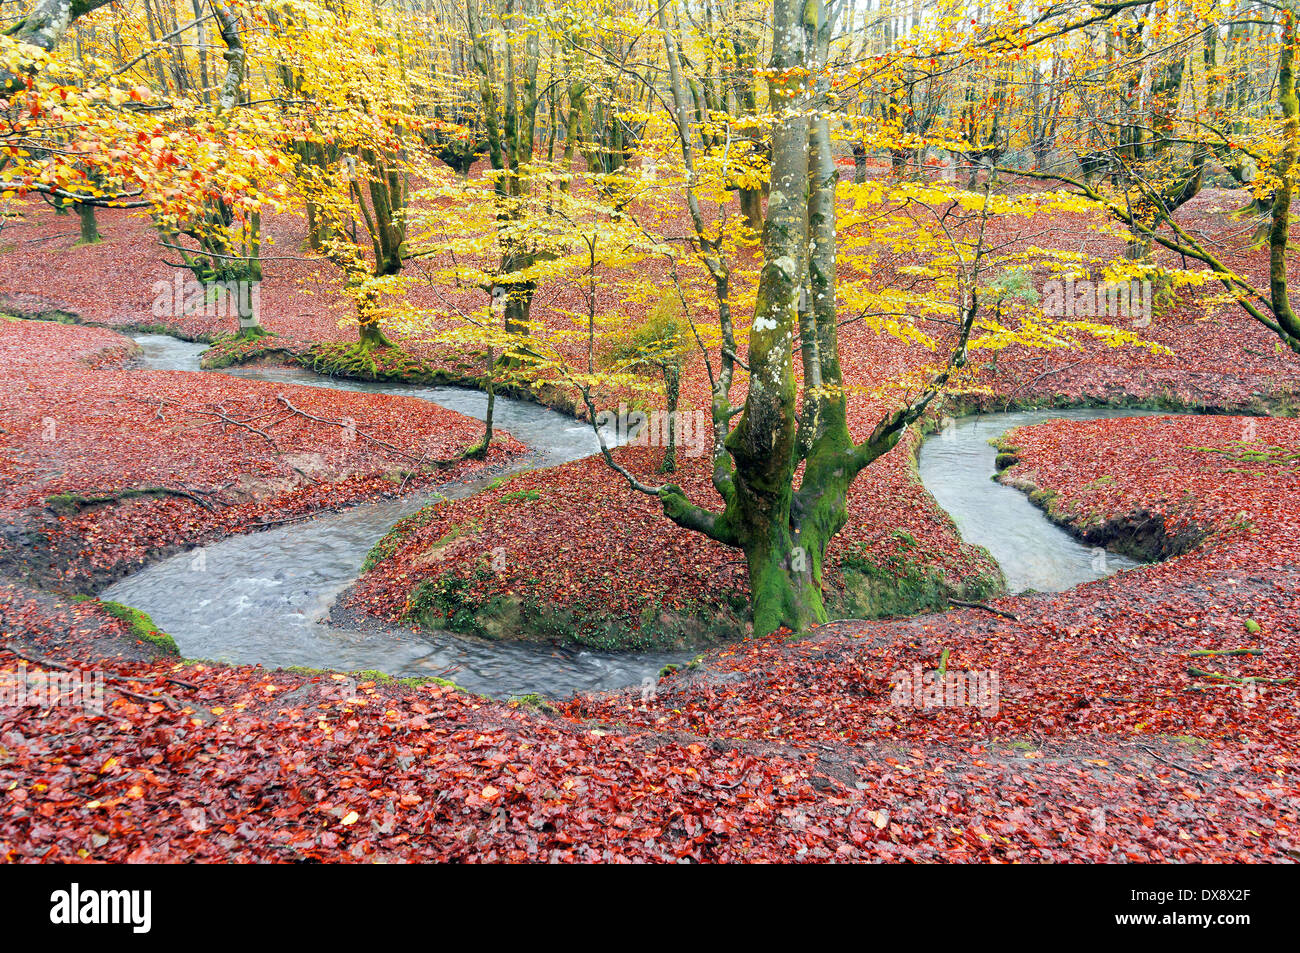 river meander in autumnal forest - Stock Image